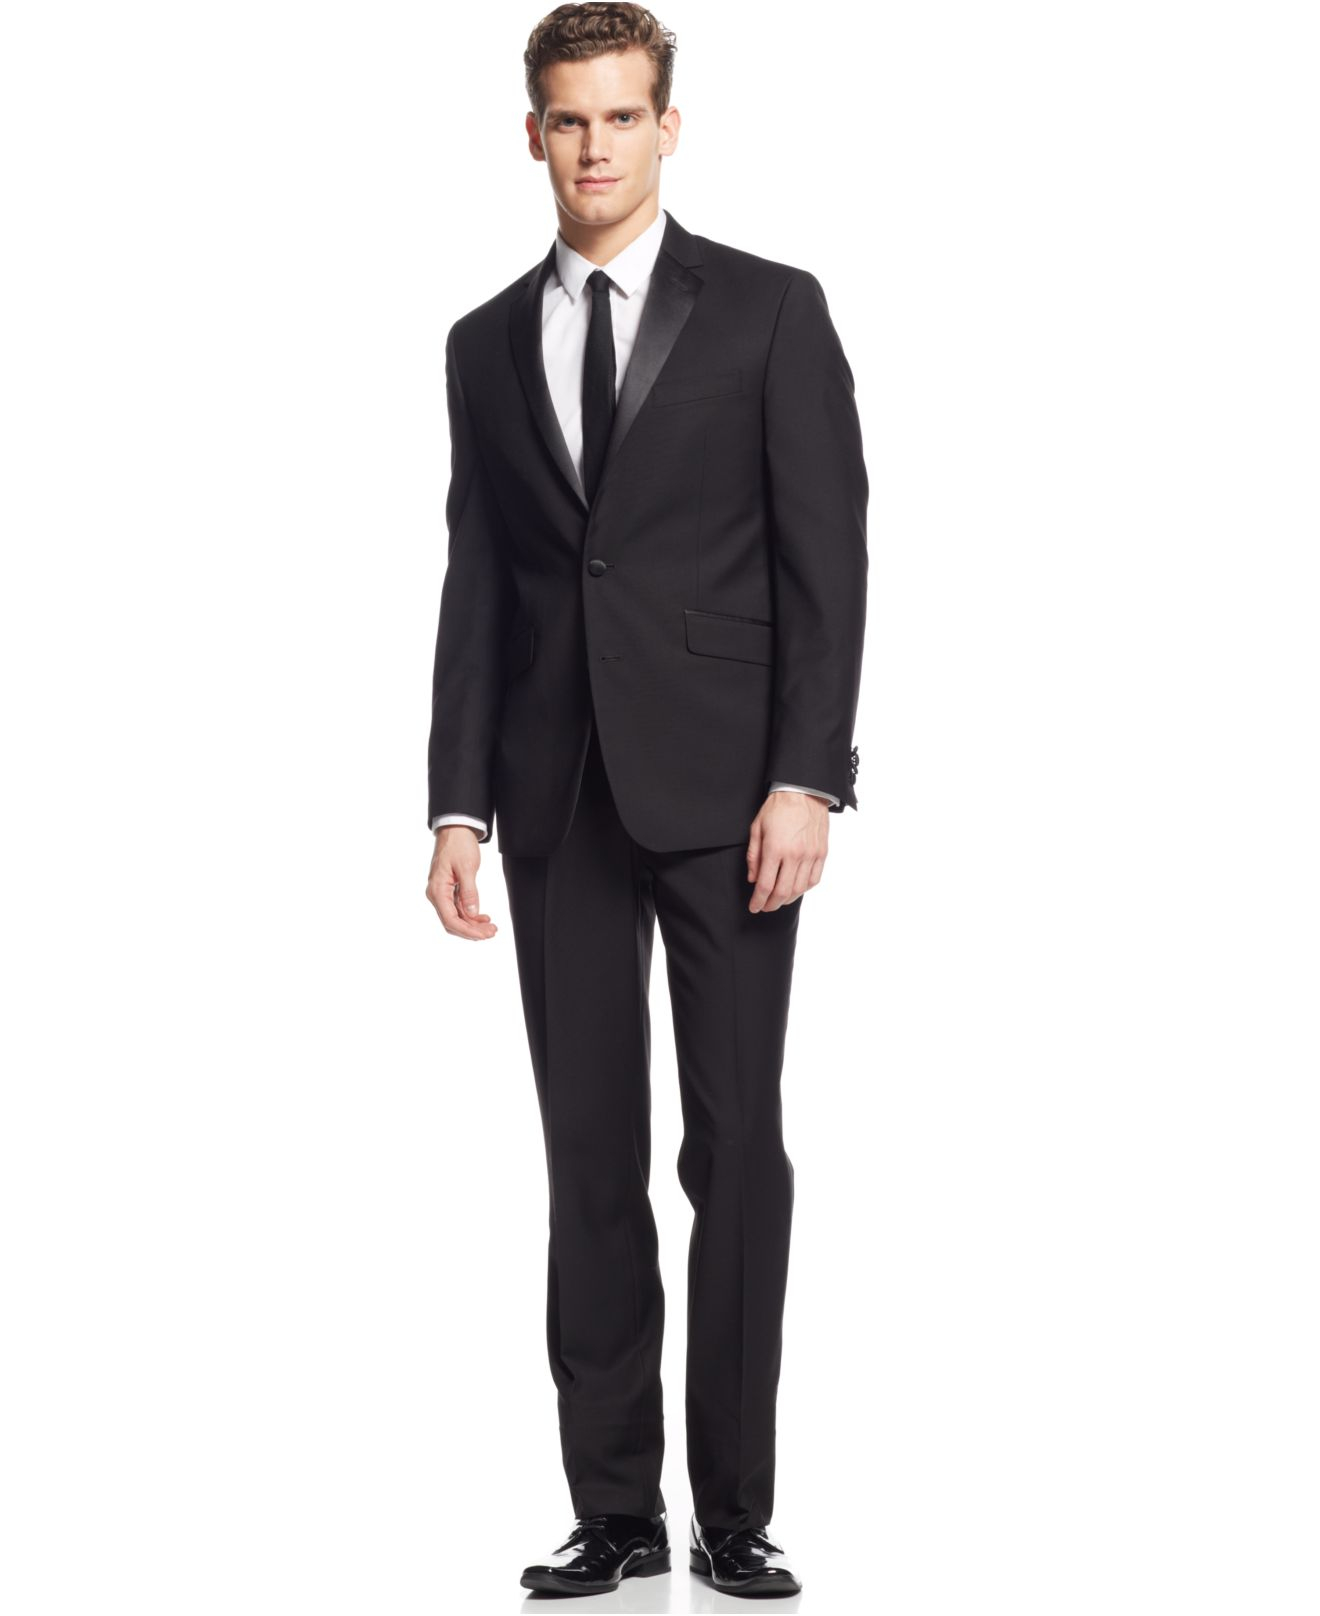 Kenneth Cole Reaction Slim Fit Black Tuxedo In Black For